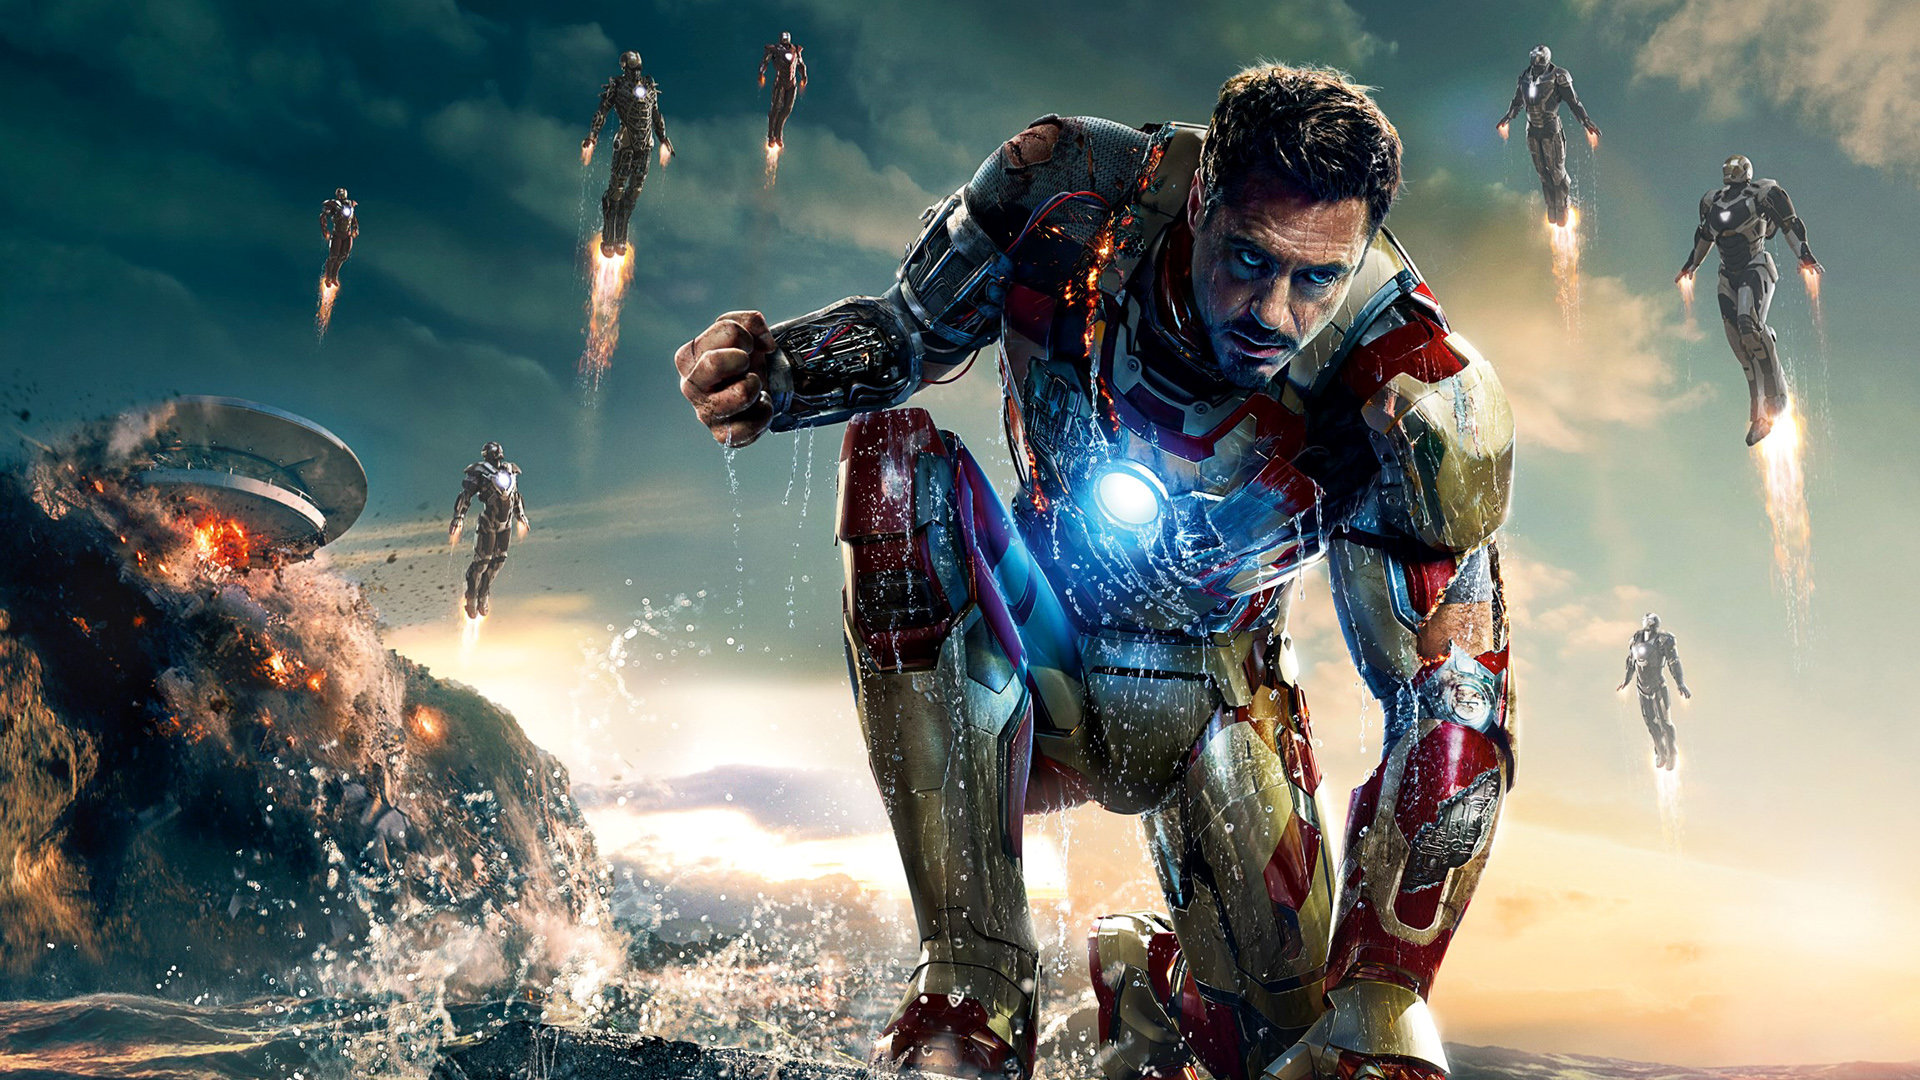 free download iron man 3 wallpaper id:400973 hd 1920x1080 for pc